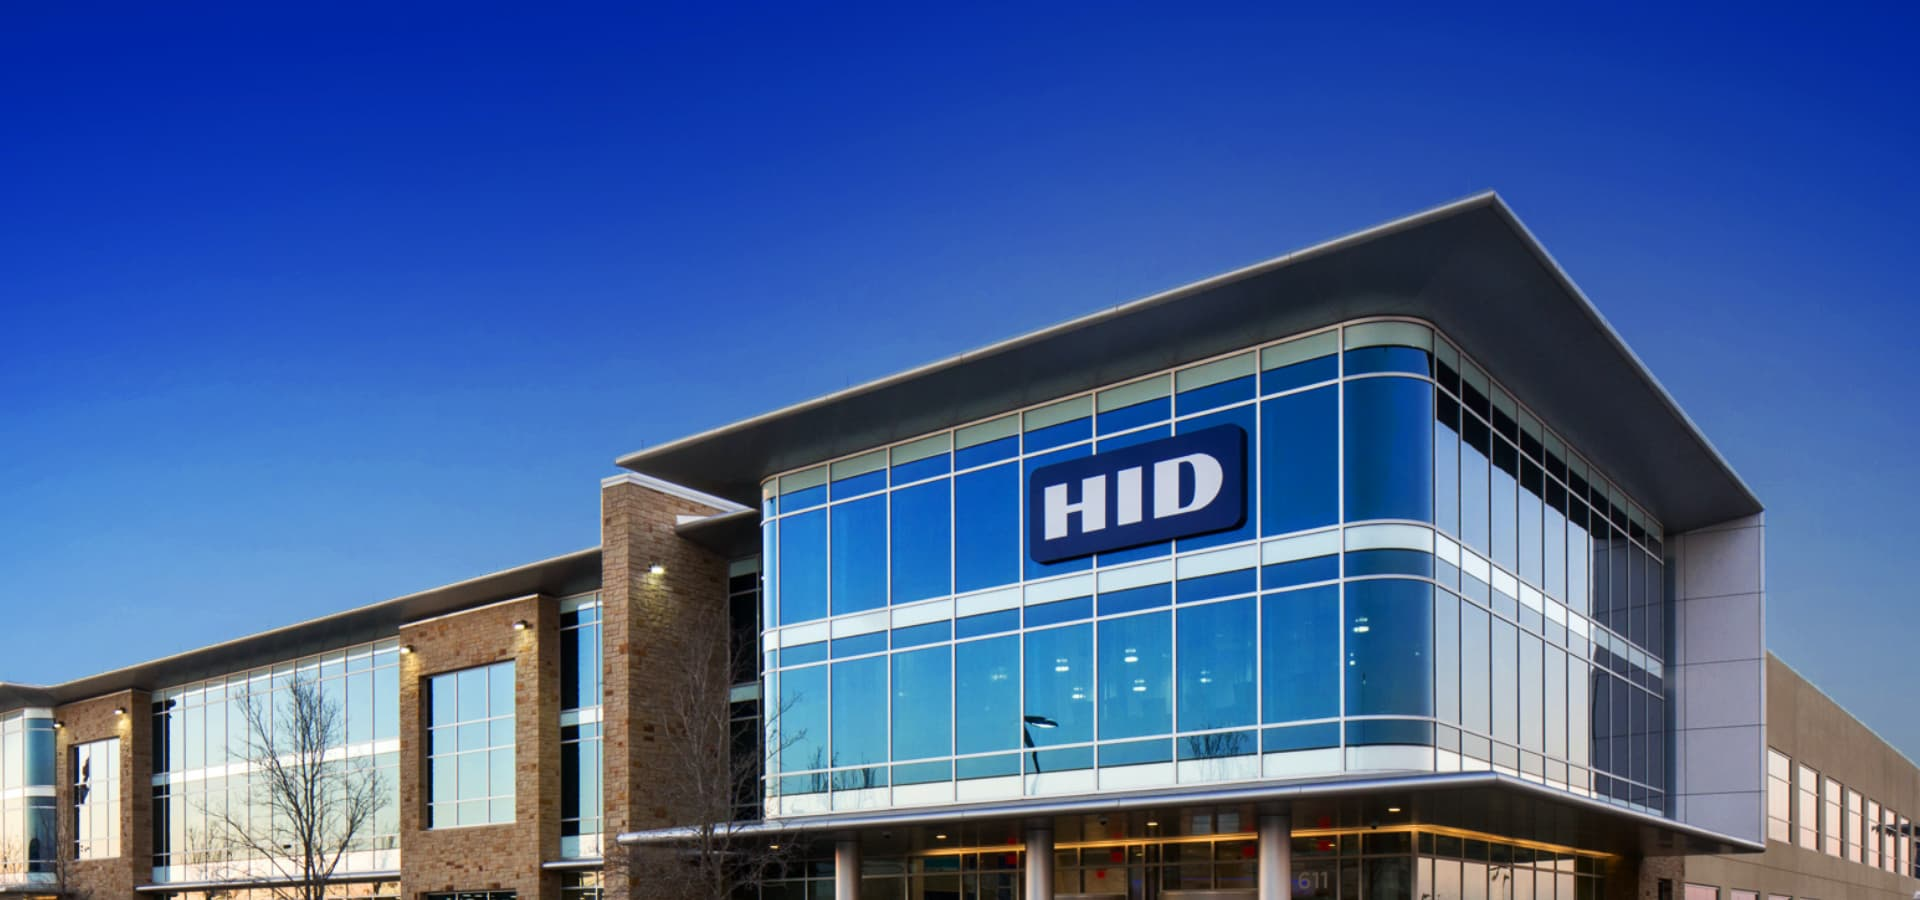 HID headquarters